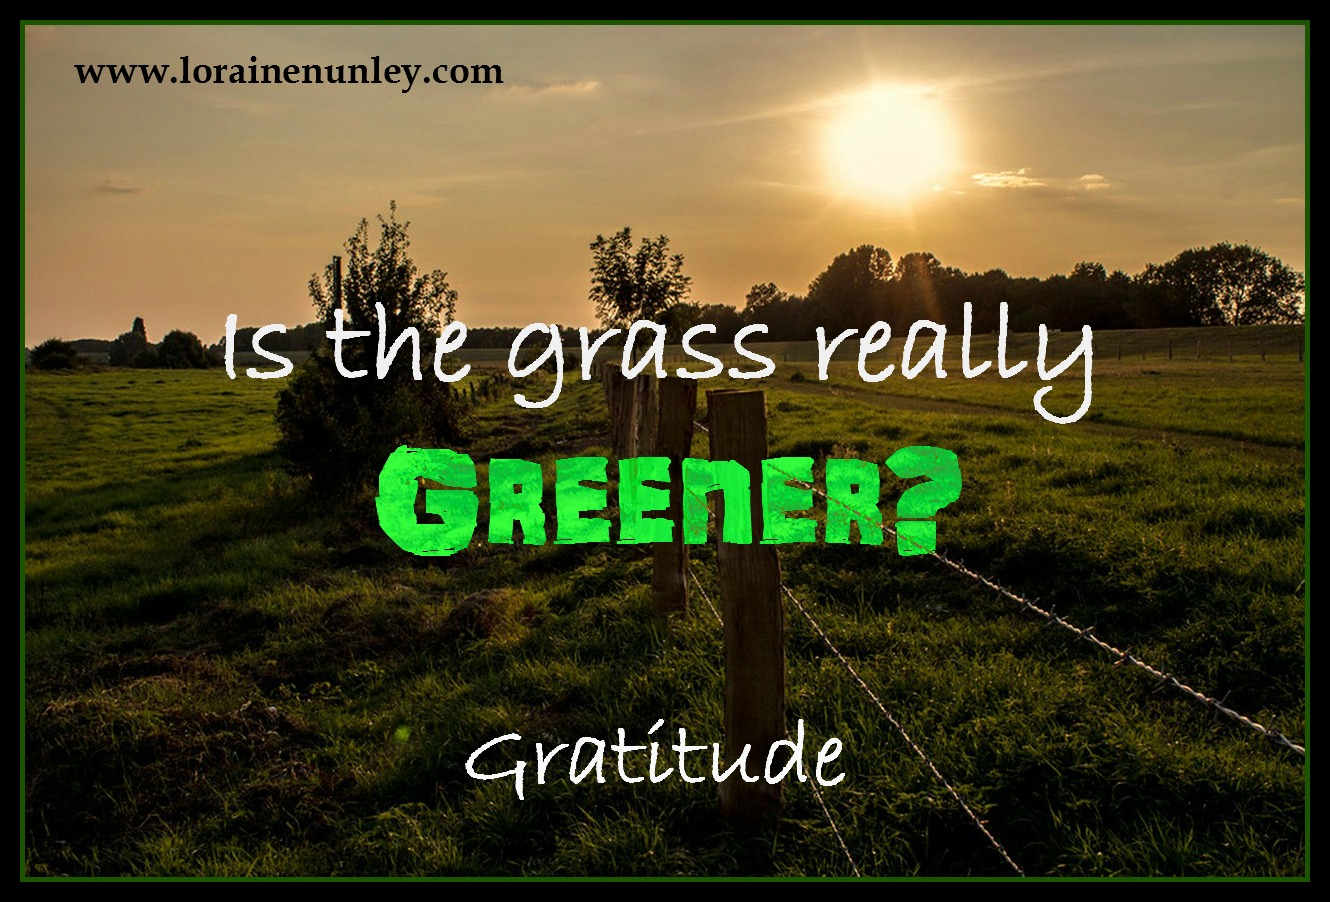 Gratitude - Is the grass really greener on the other side?